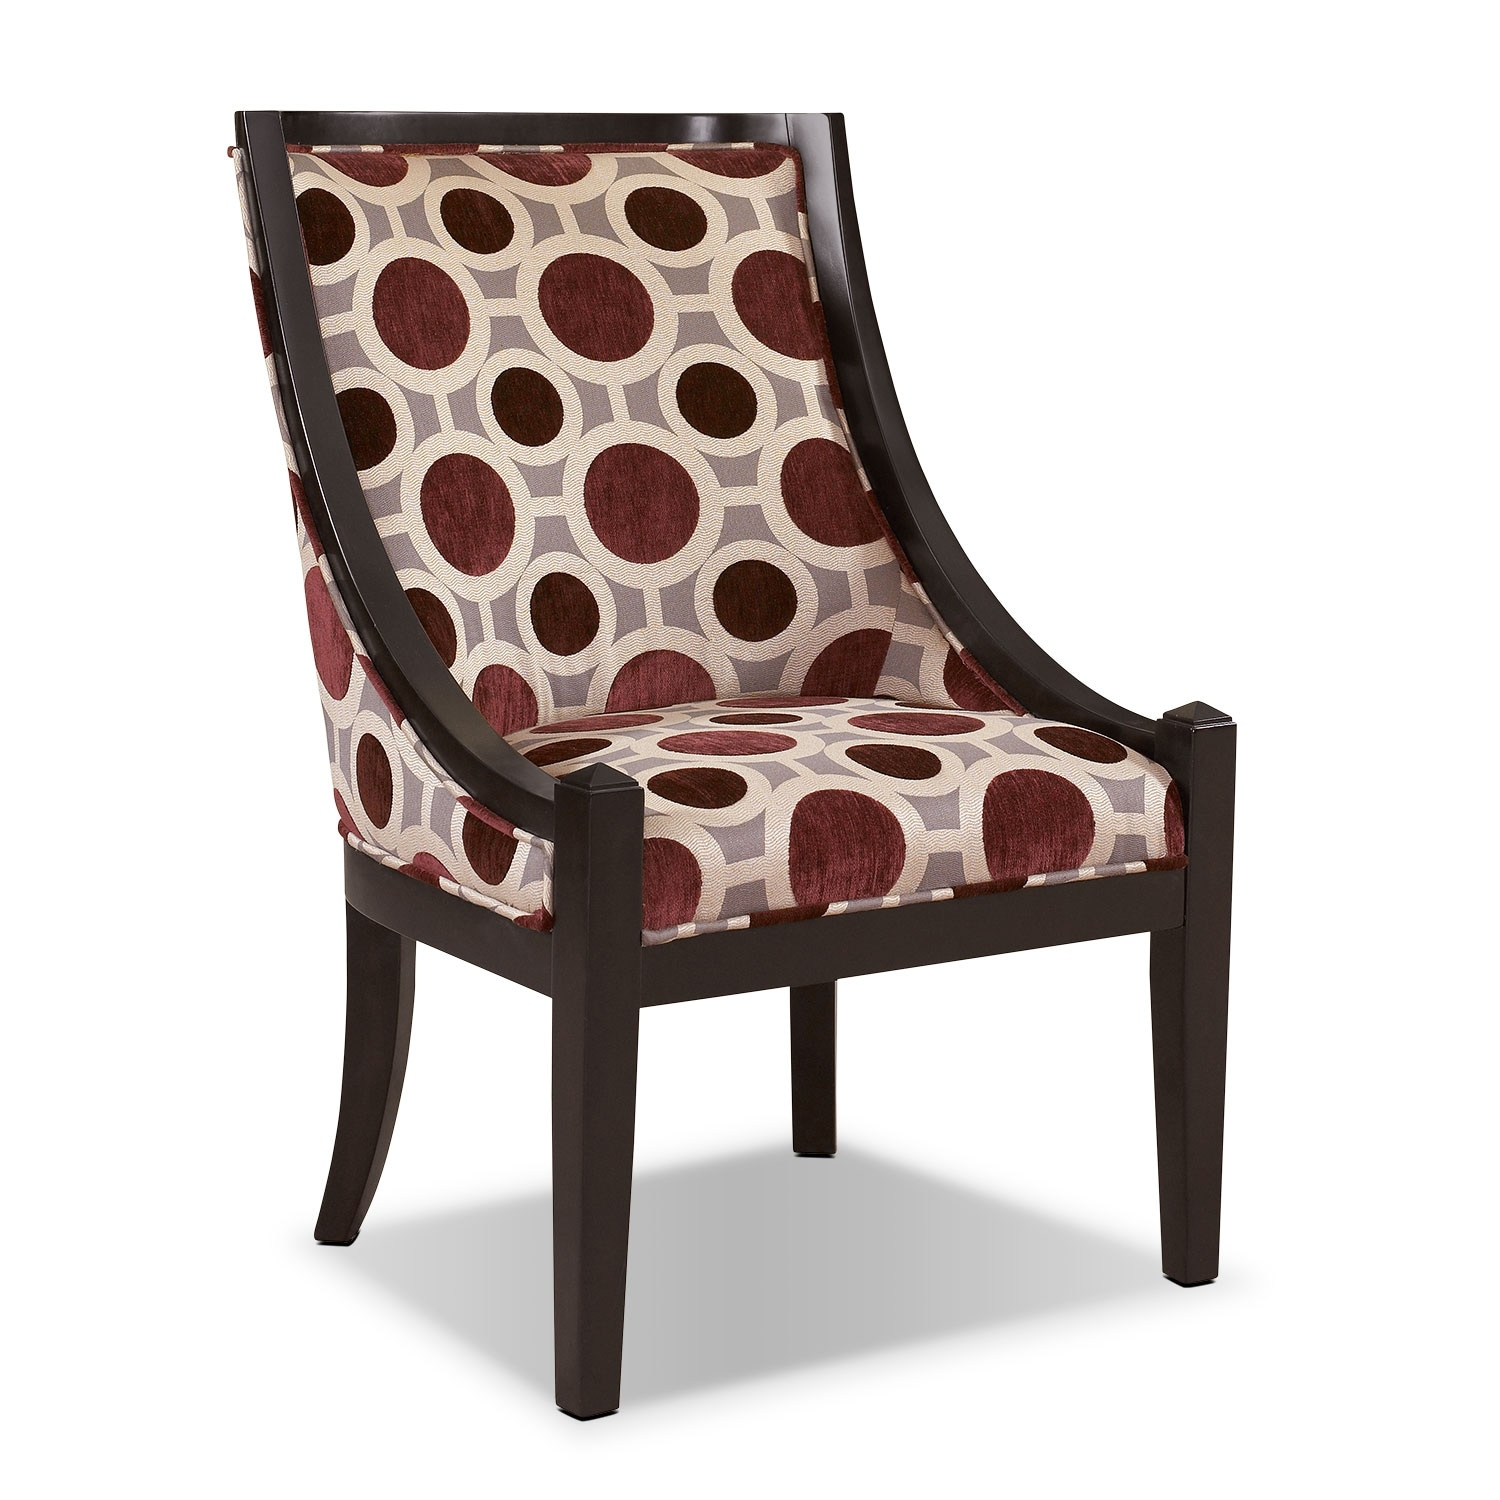 Callie Accent Chair – Mulberry | American Signature Furniture Regarding Callie Sofa Chairs (View 24 of 25)